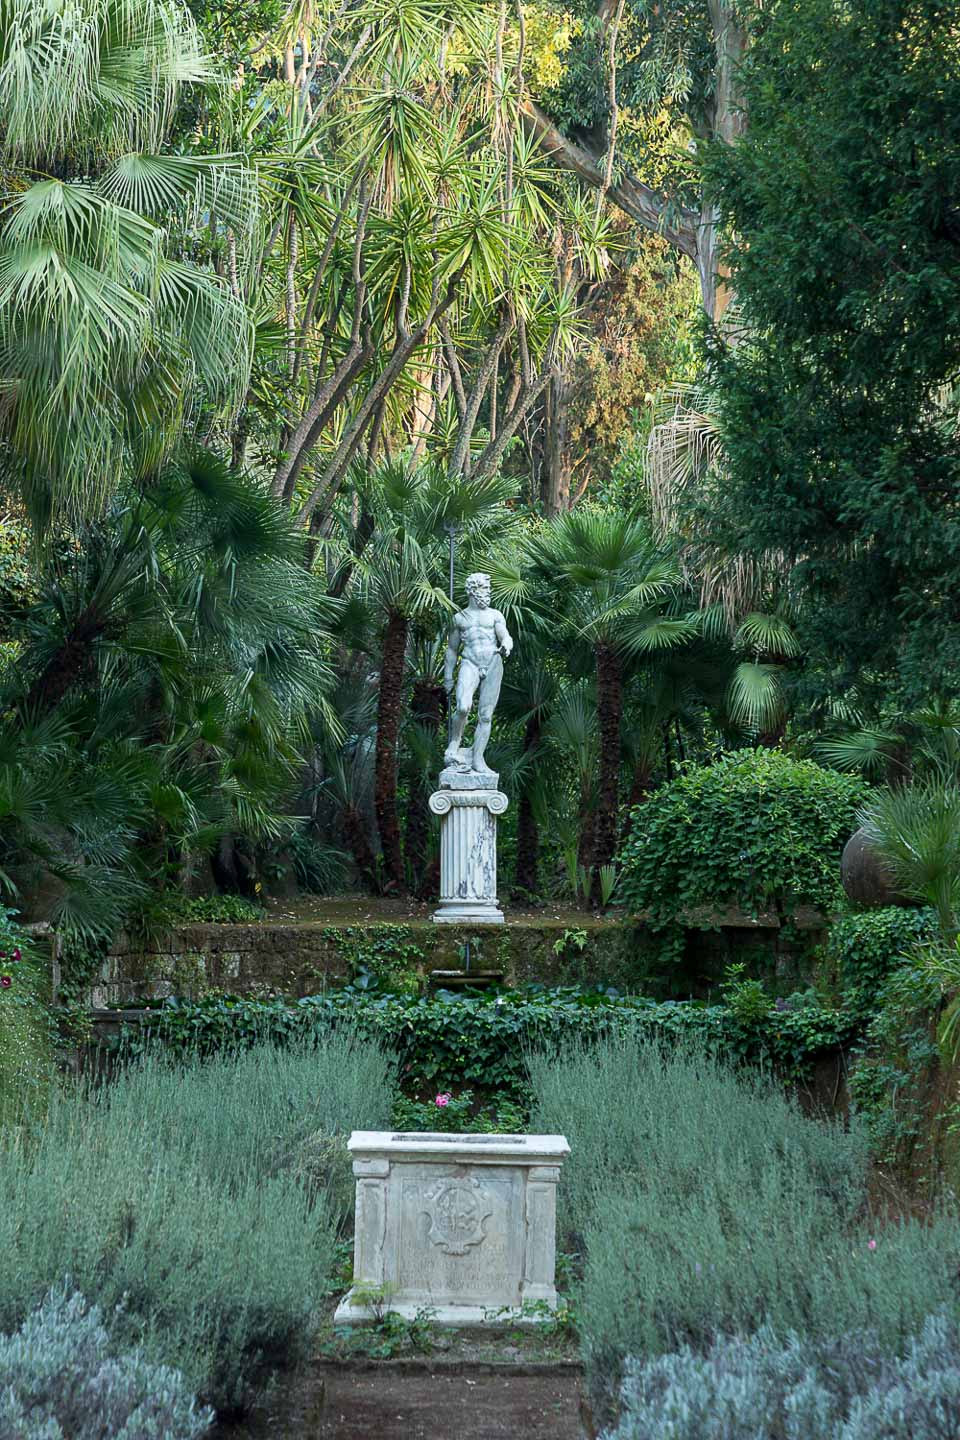 Villa Astor Italian best garden statue lavander beautiful wild landscape for exquisite dinner lunch Italian wine food luxurious accommodation stay holiday vacation 1